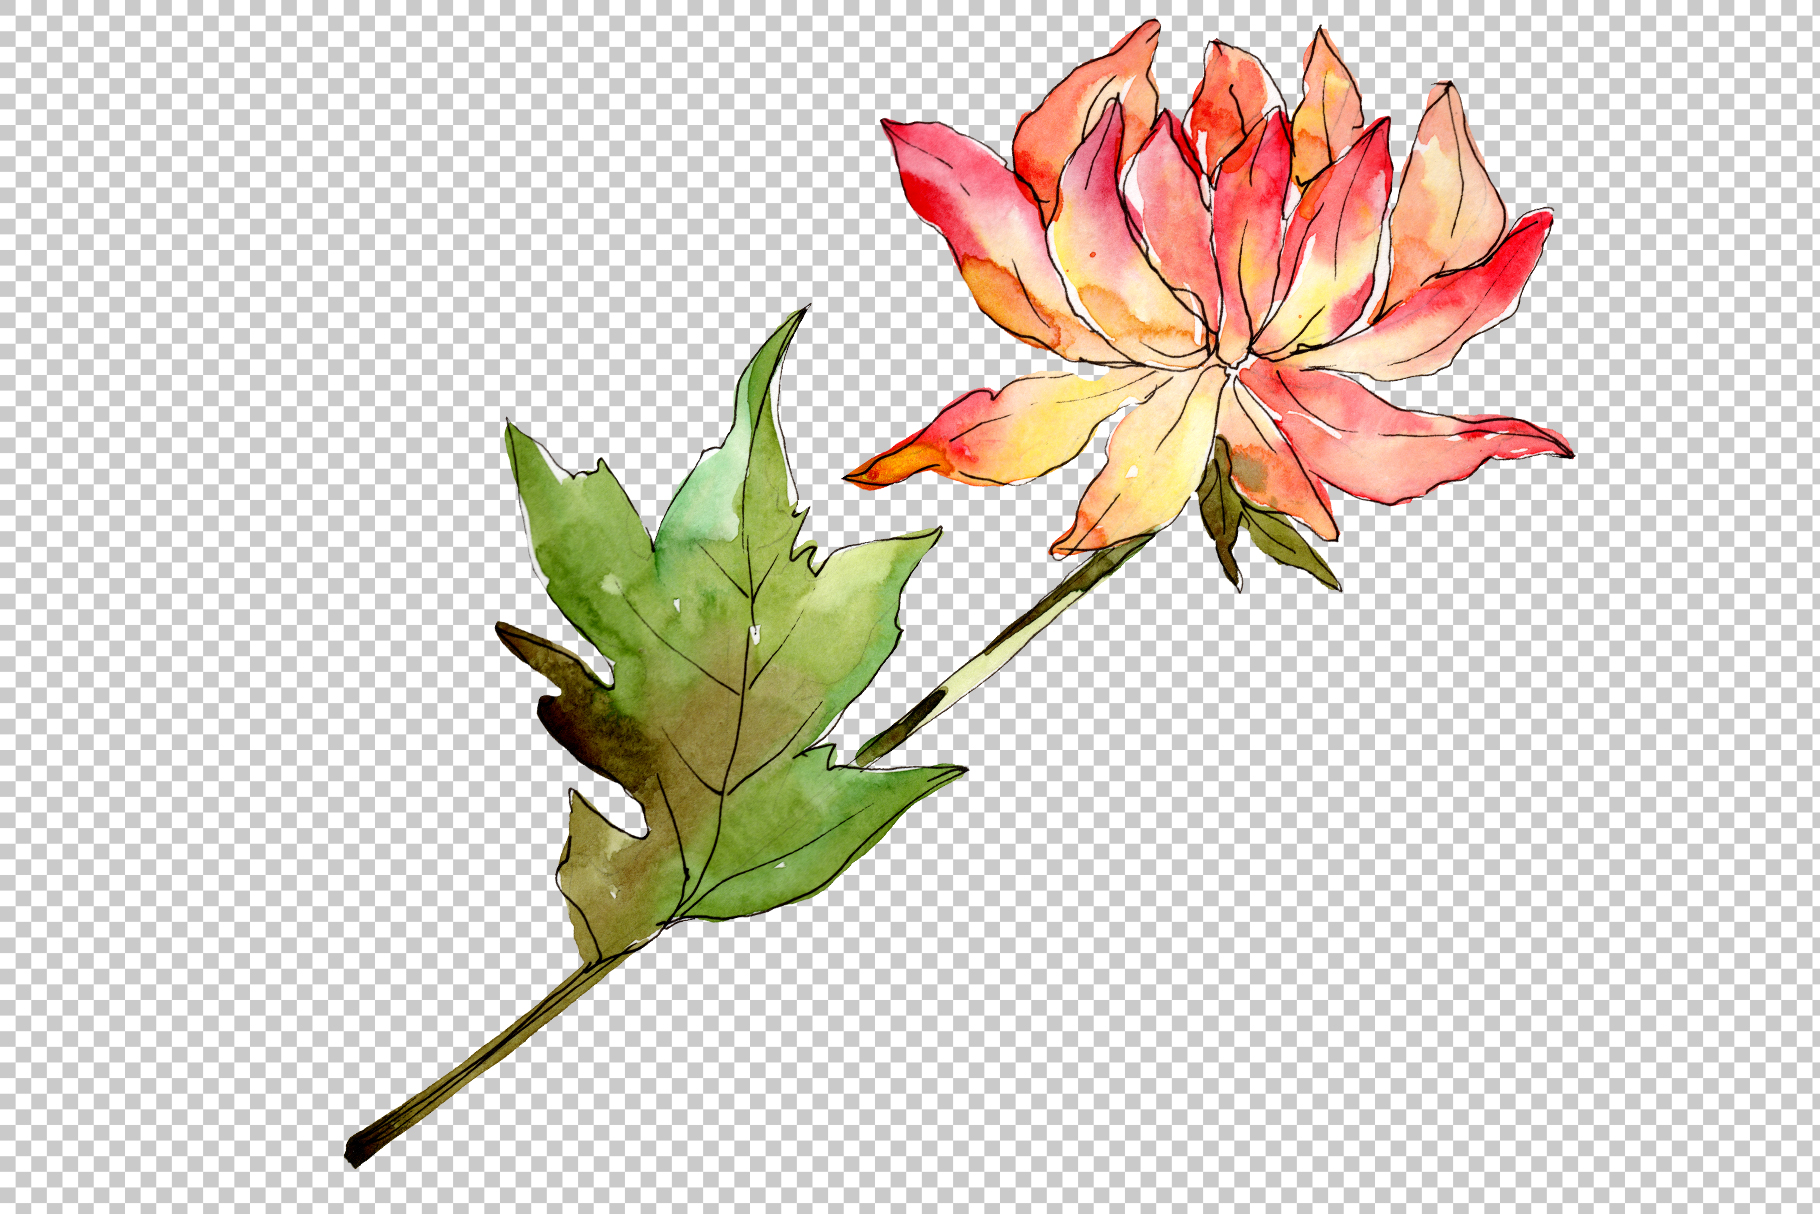 Delicate flower daisy watercolor png example image 3